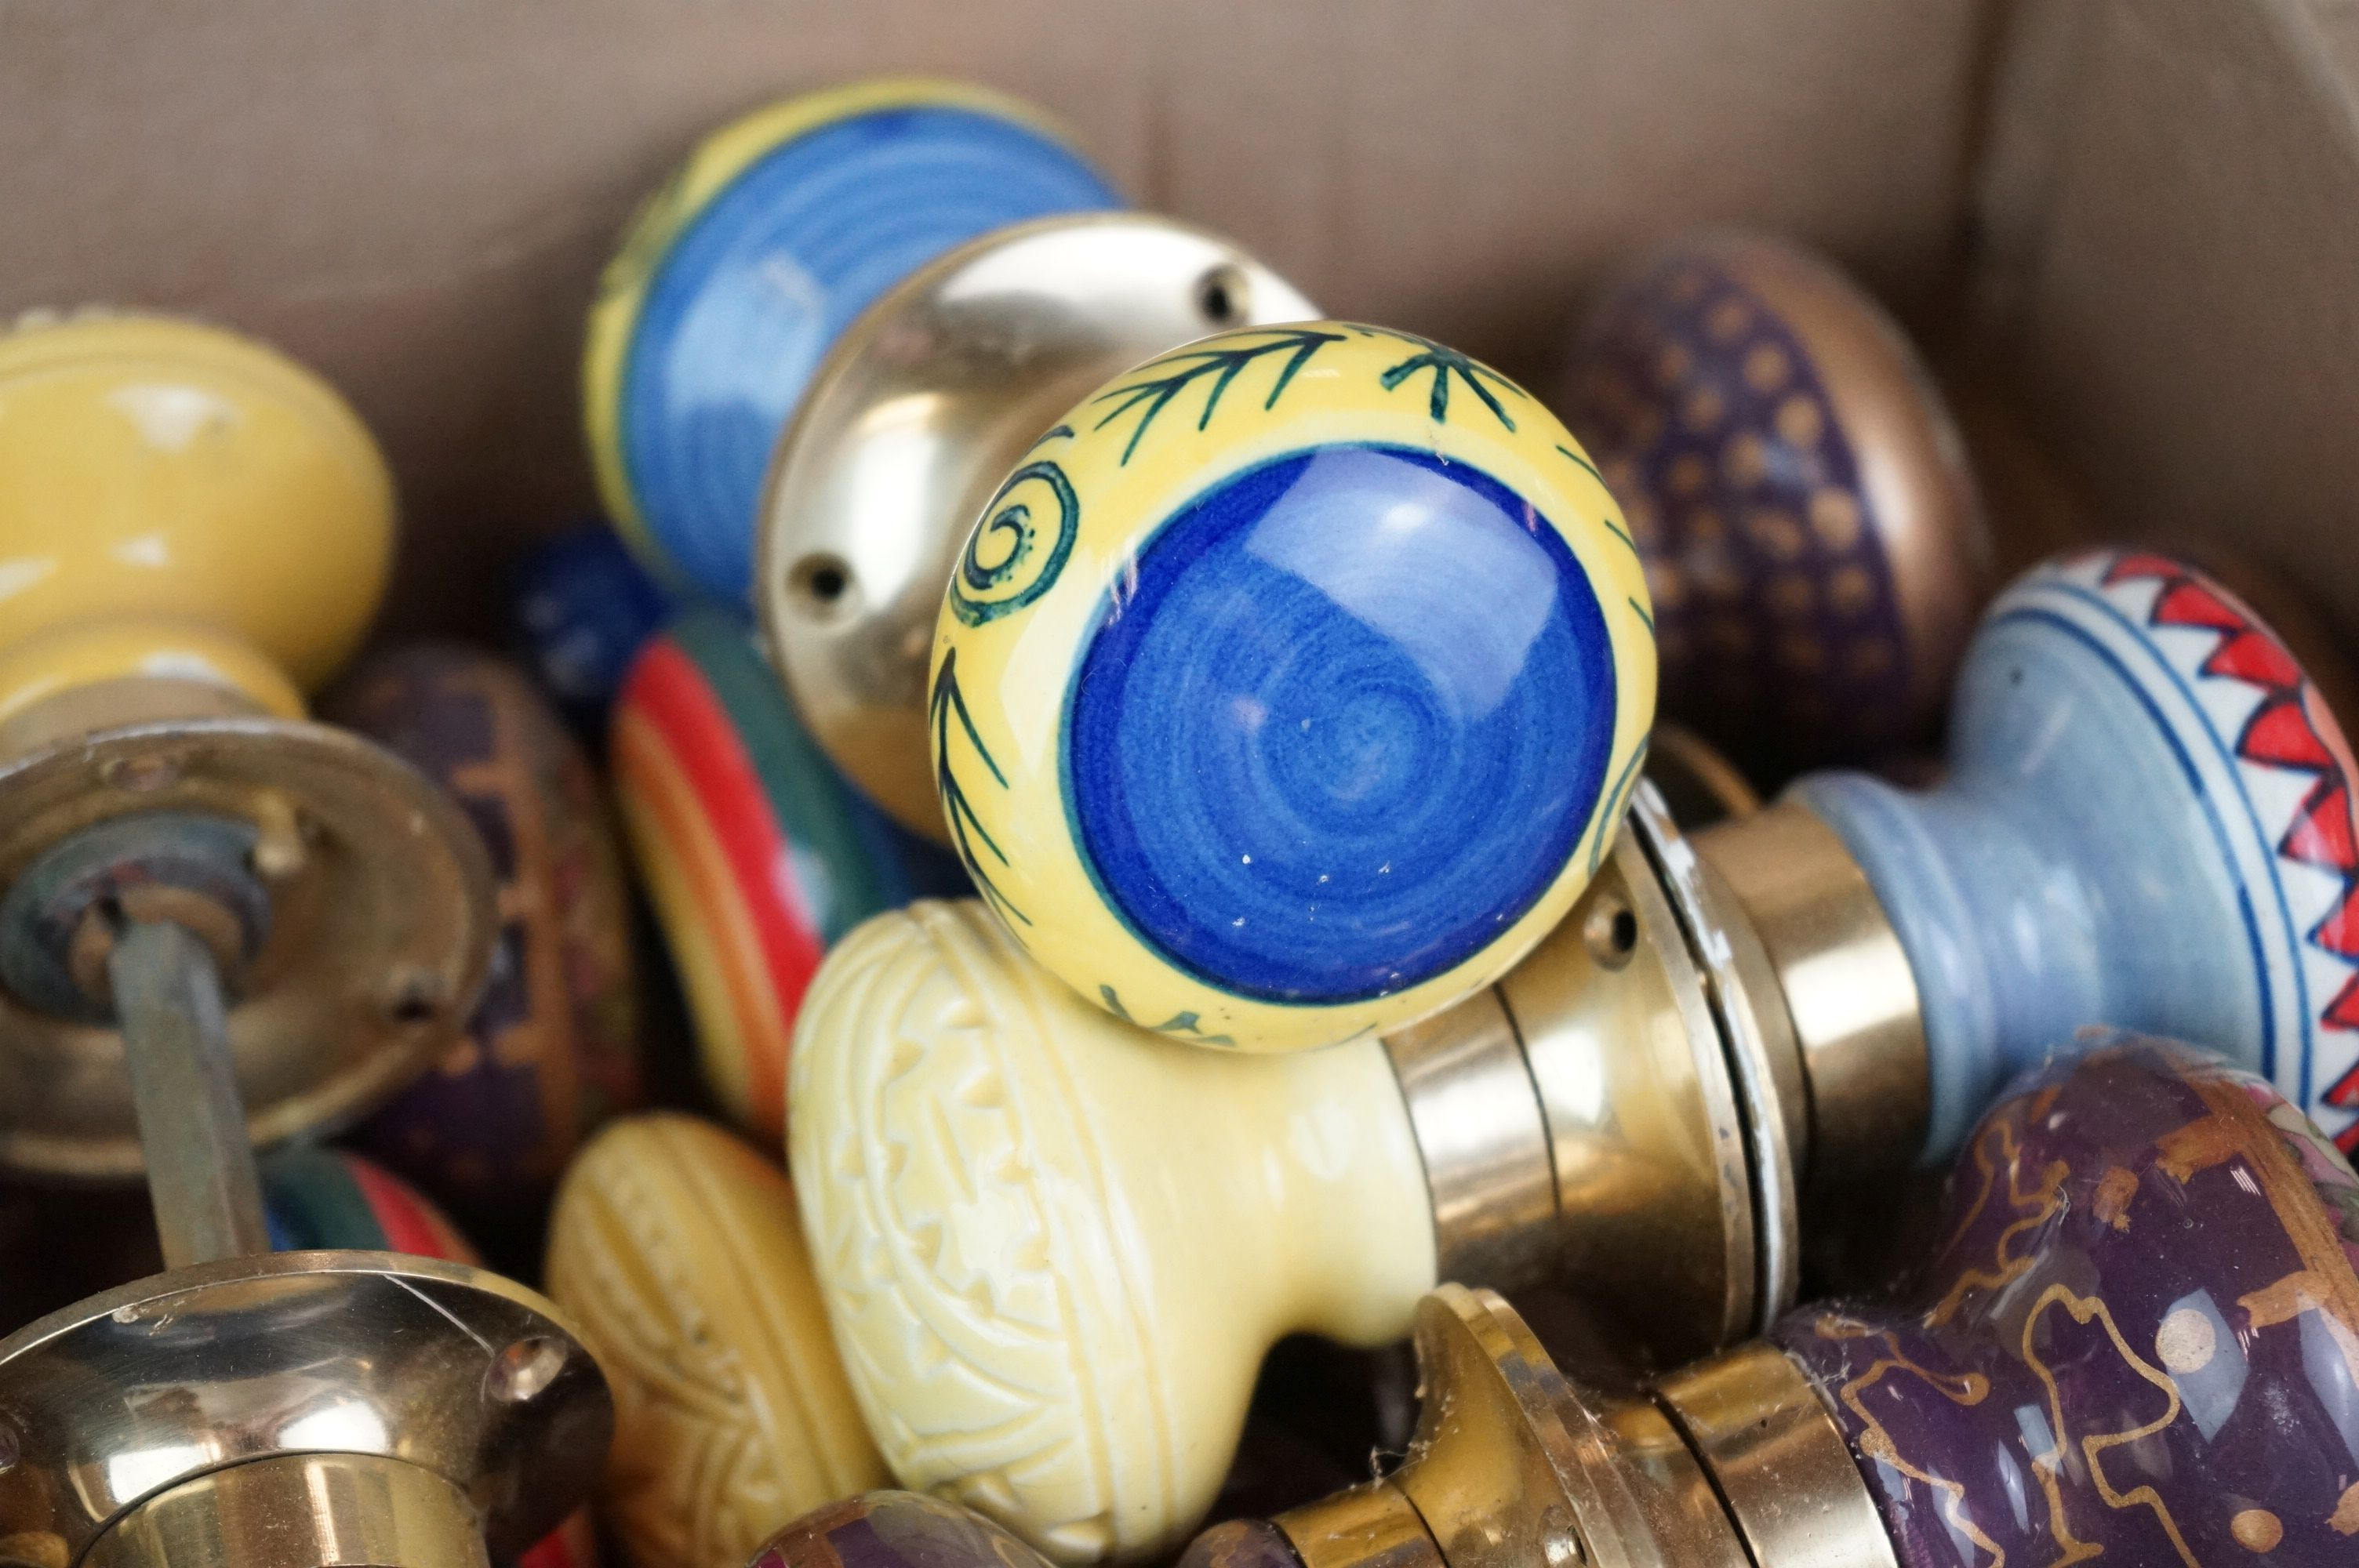 A collection of vintage ceramic door knobs. - Image 2 of 7